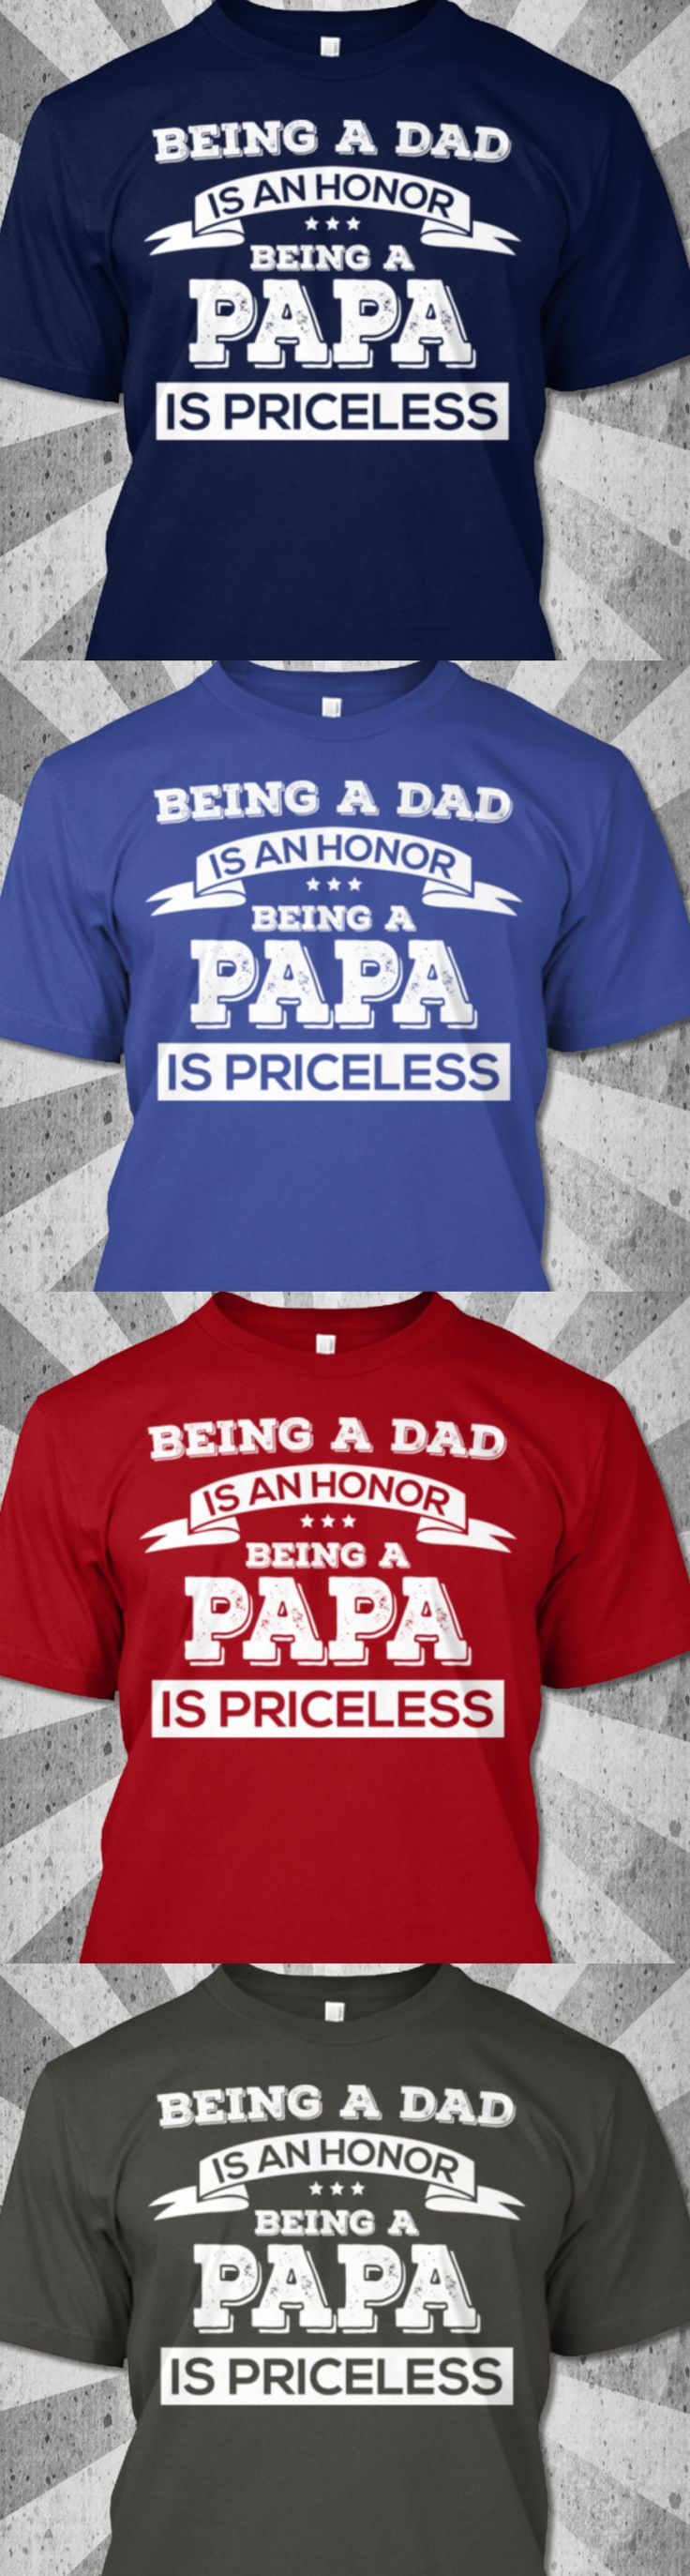 Need a Father's Day Gift? Check out our best selling gear!  All items ON SALE NOW @ $19.99  Get the perfect gift for your husband, dad and grandpa!